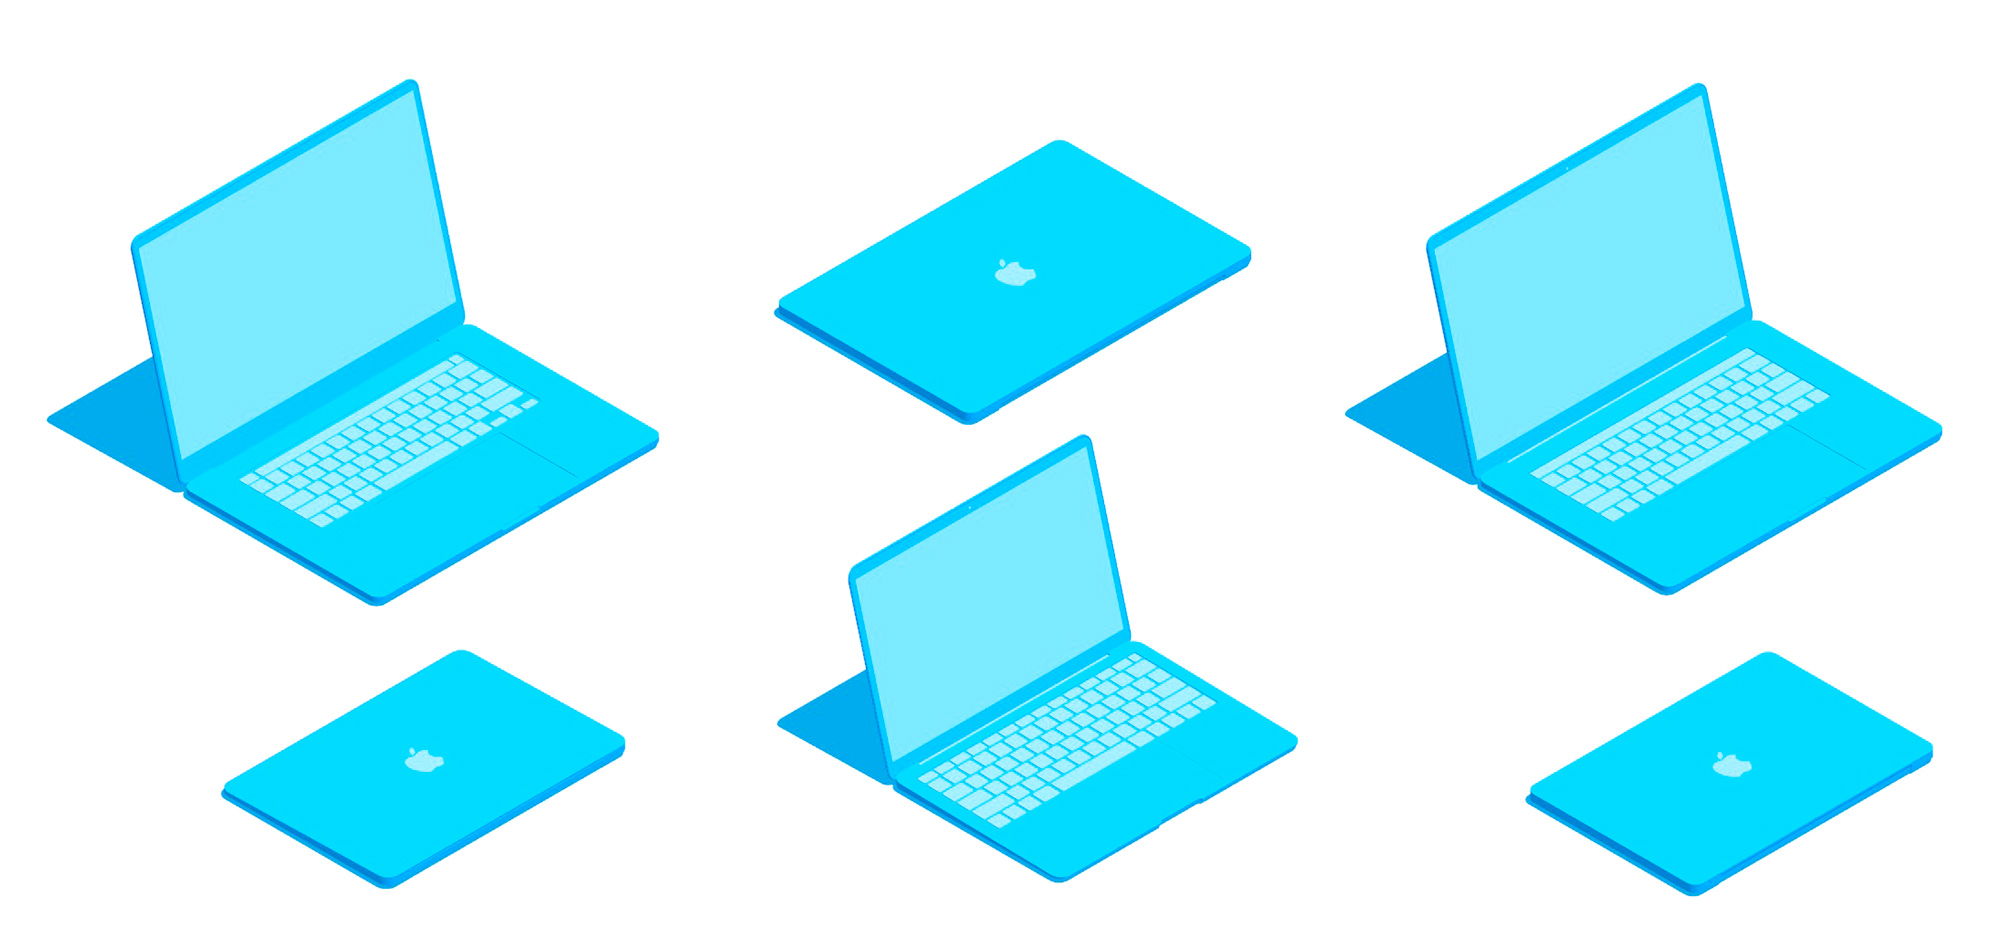 Group of 3D perspectives of various generations of Apple MacBooks including the MacBook Air and MacBook Pros